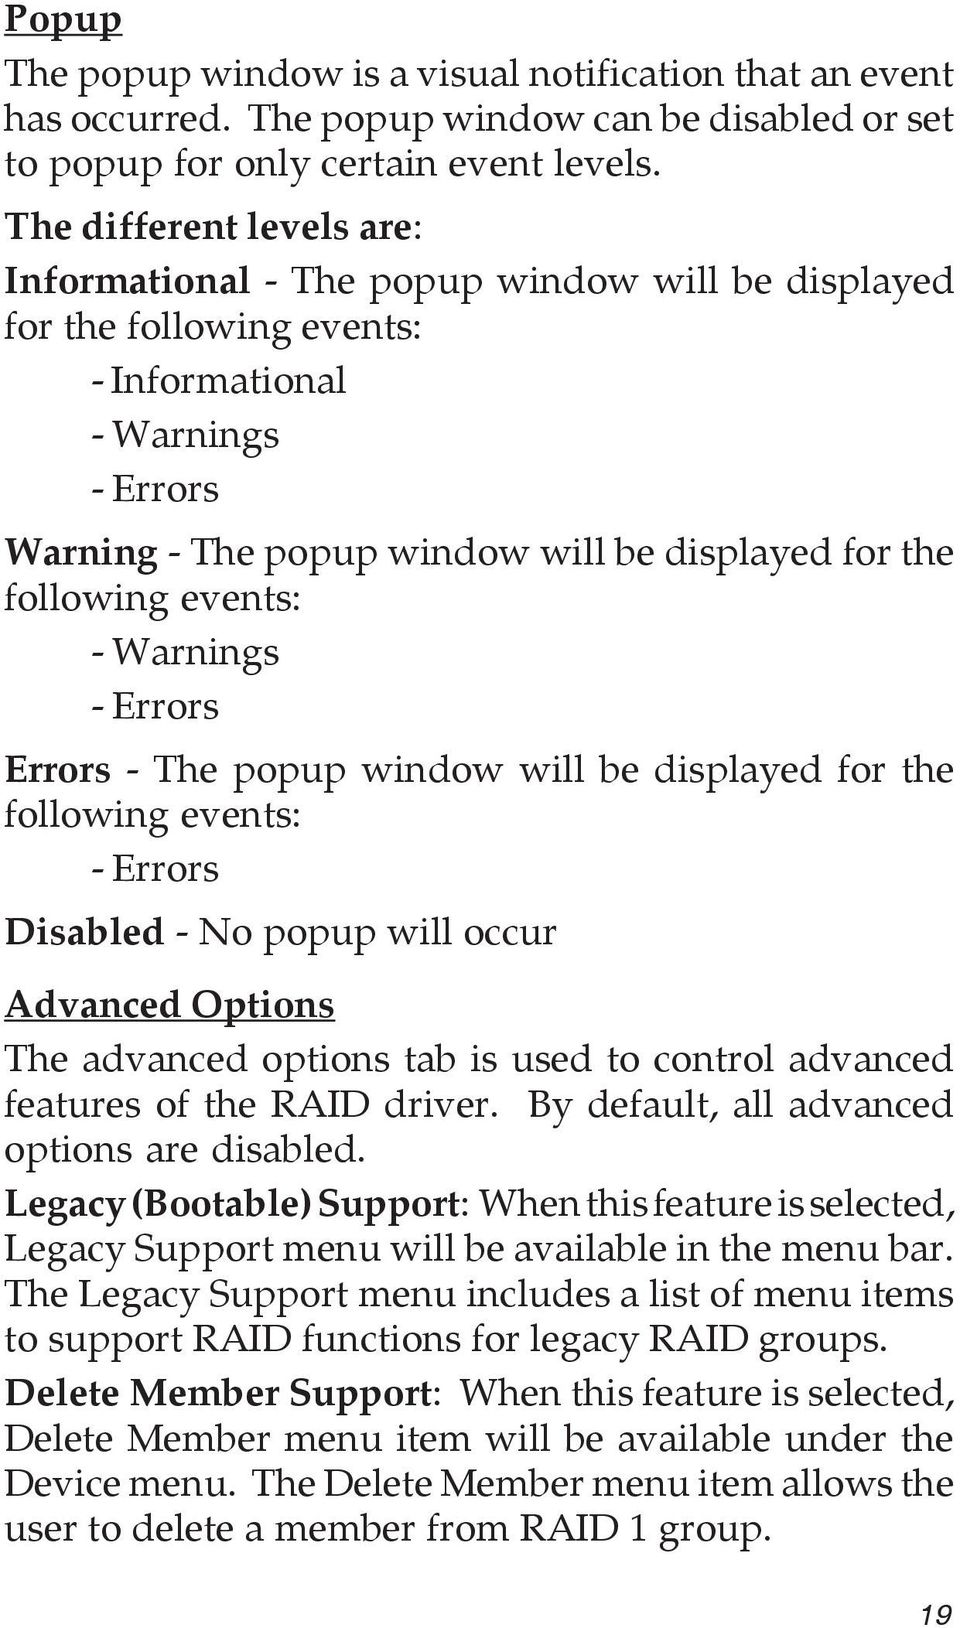 following events: - Warnings - Errors Errors - The popup window will be displayed for the following events: - Errors Disabled - No popup will occur Advanced Options The advanced options tab is used